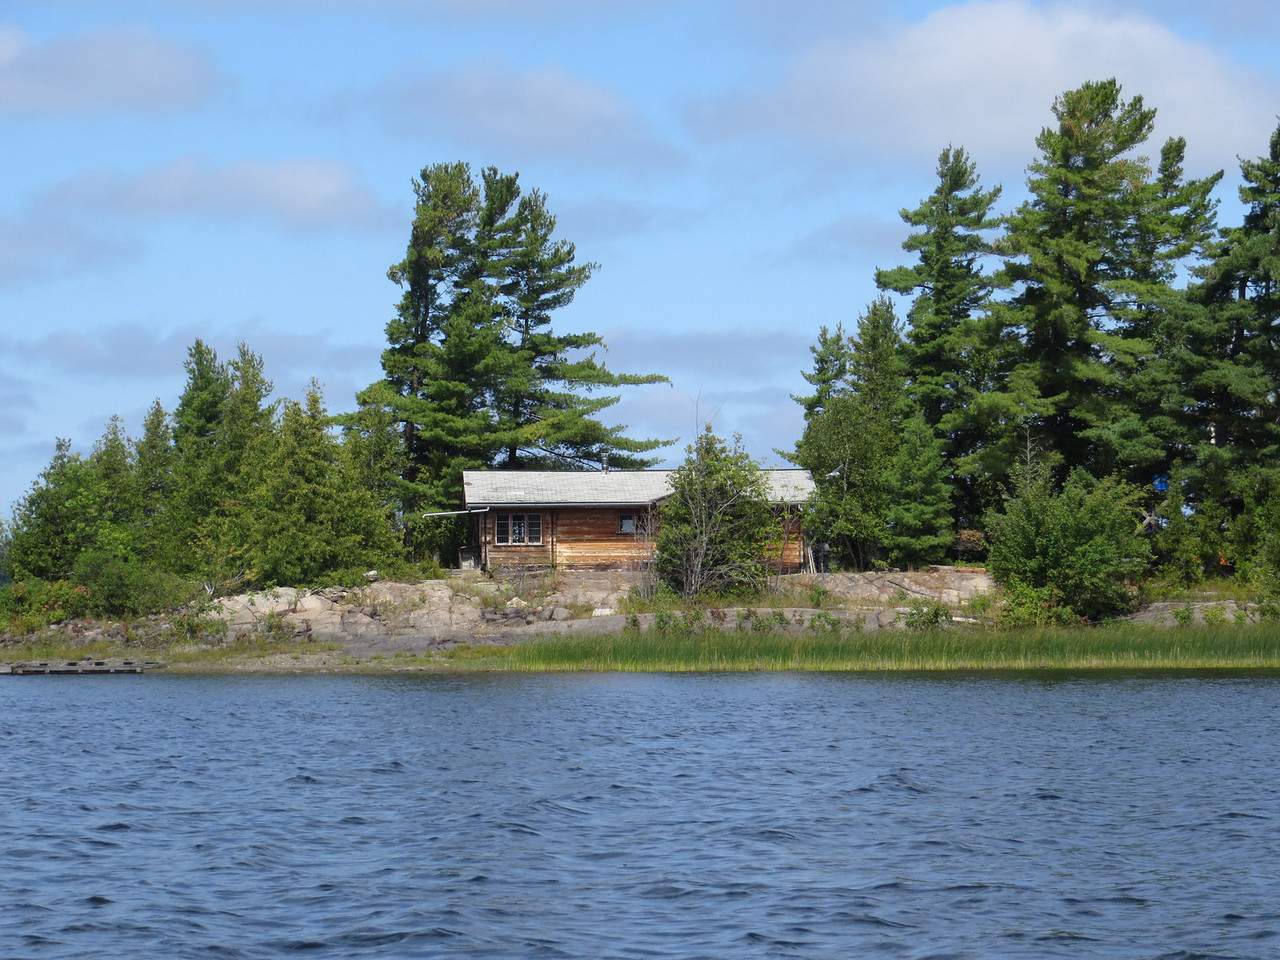 One of the many cottages along the lower French River